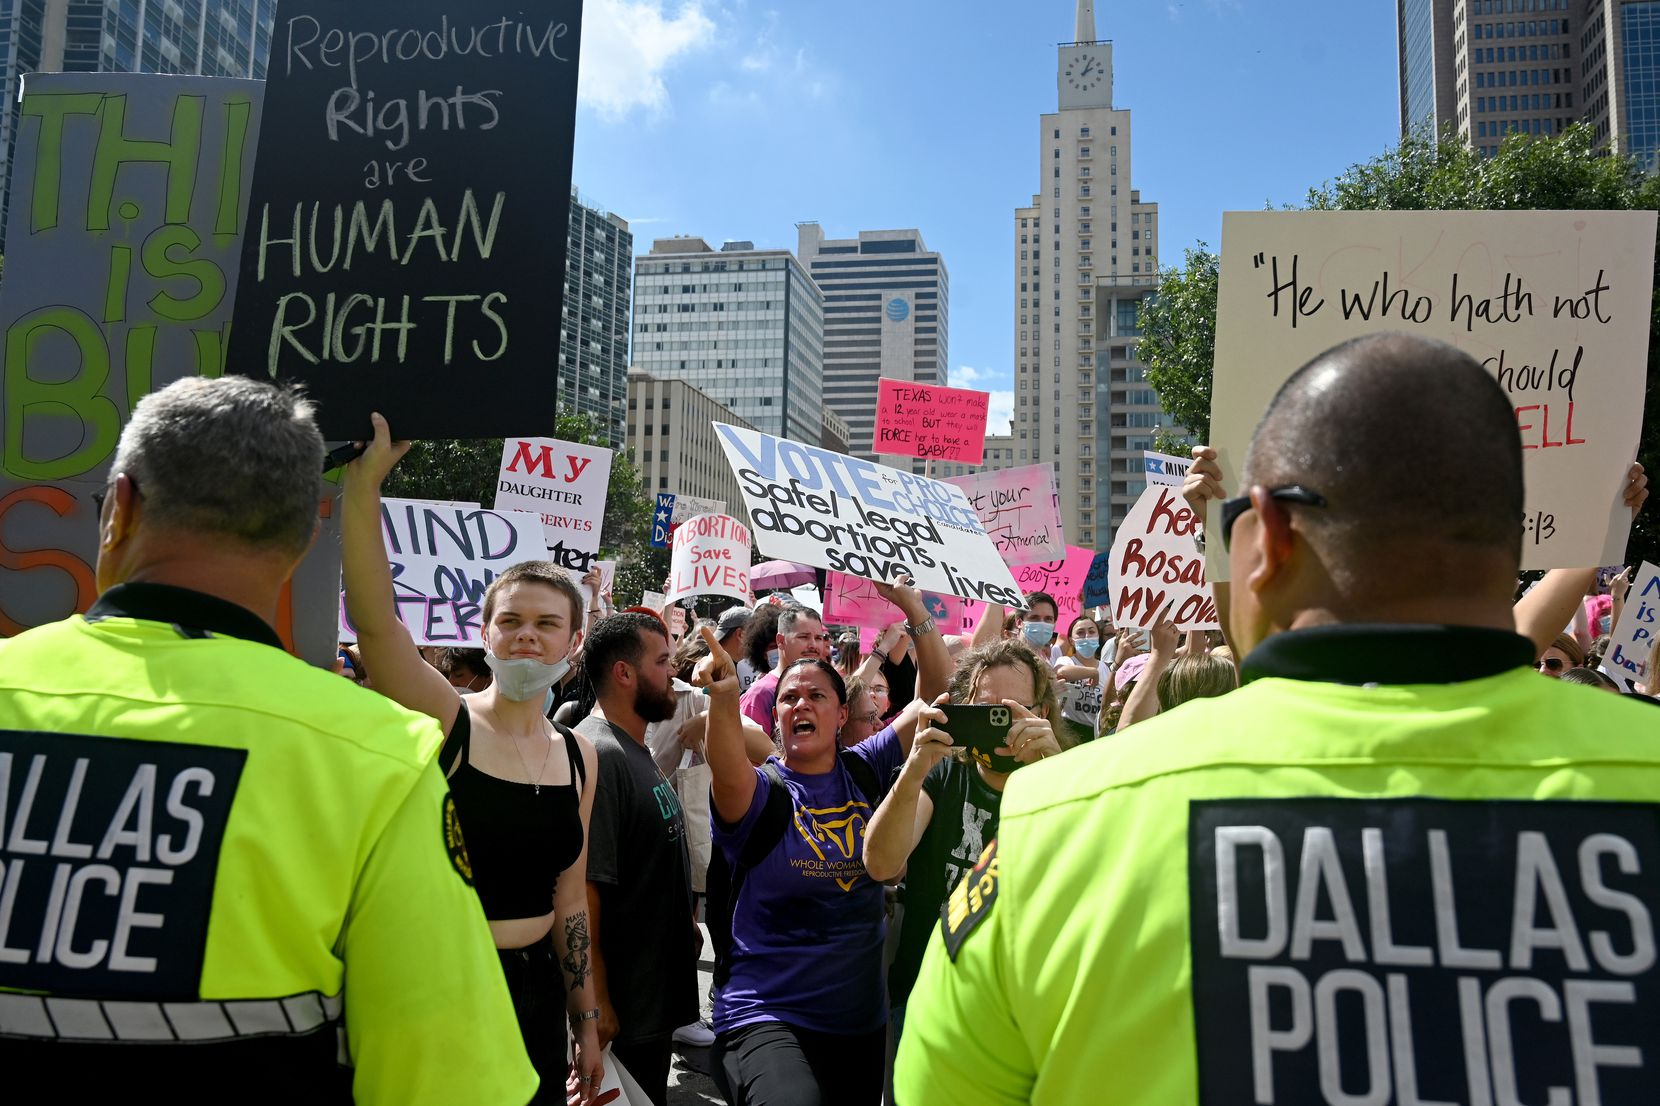 While people on both sides of the abortion issue loudly proclaimed their opinions, Dallas police made sure they stayed apart, and the demonstration remained peaceful.